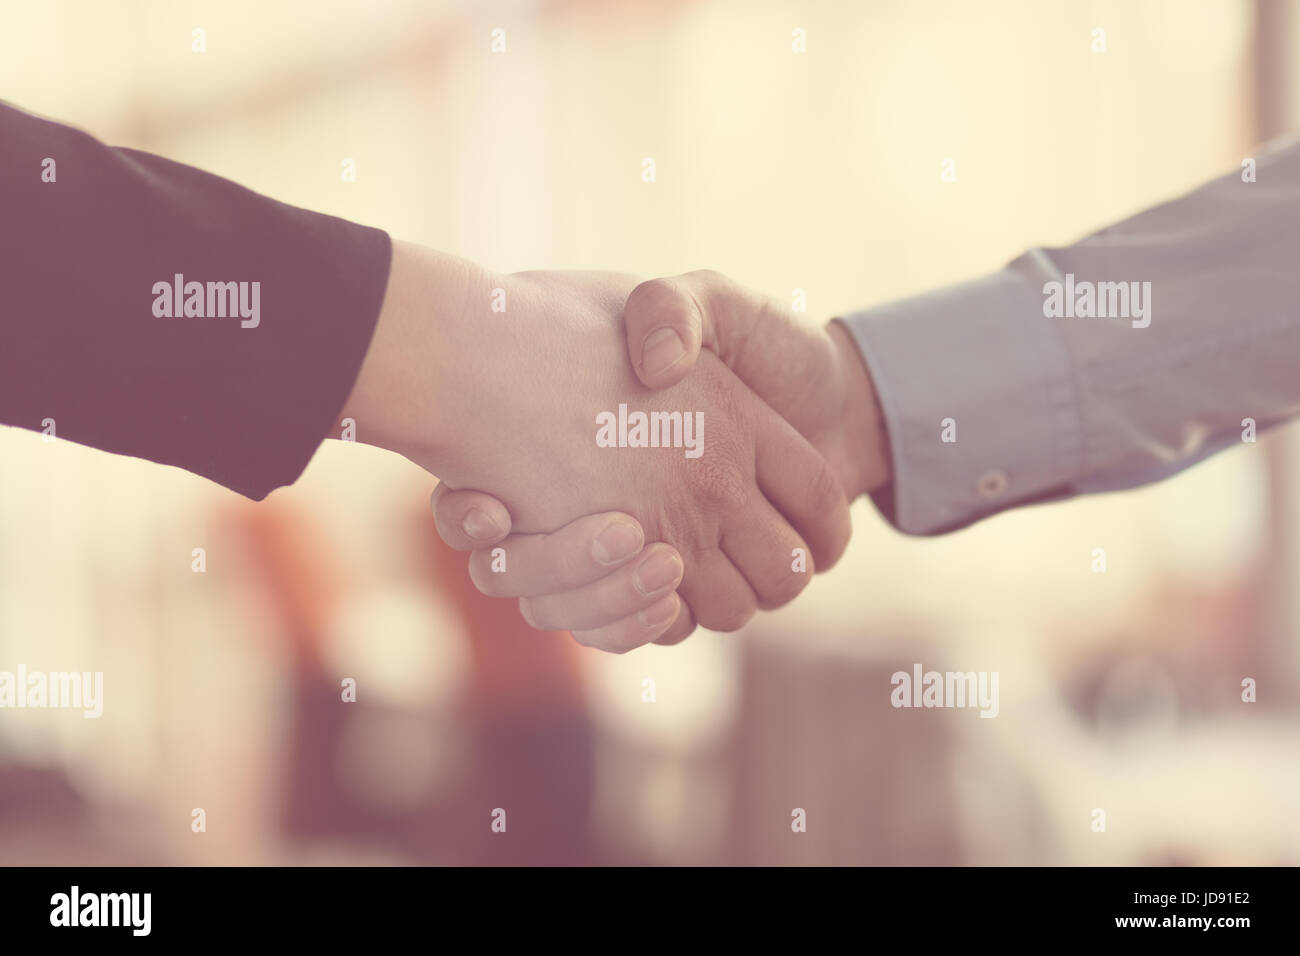 People at work: man and woman hand shaking at a meeting - Stock Image